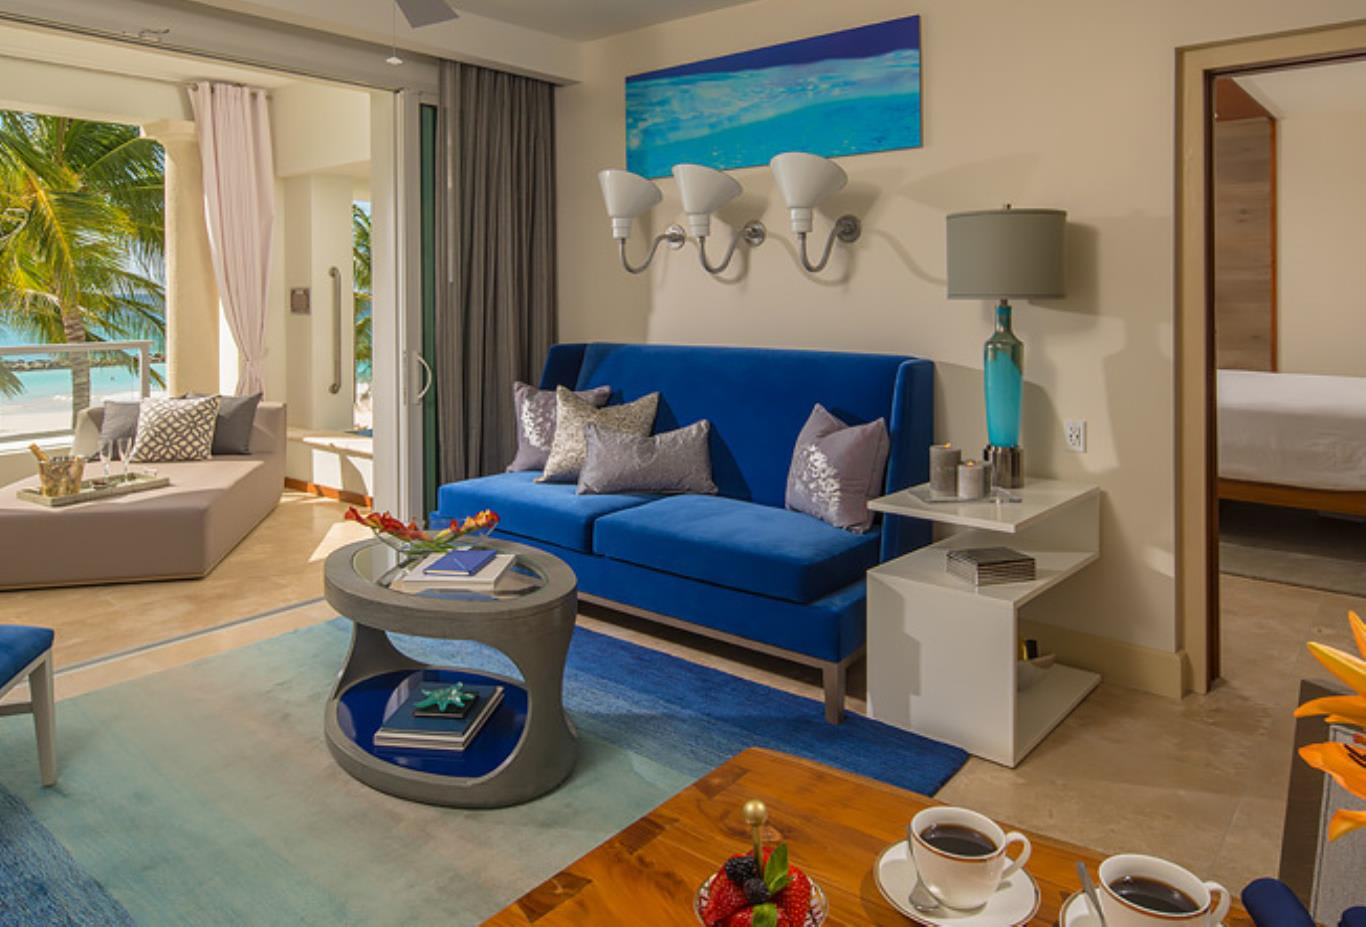 BSKY Beachfront One Bedroom Skypool Butler Suite with Balcony Tranquillity Soaking Tub